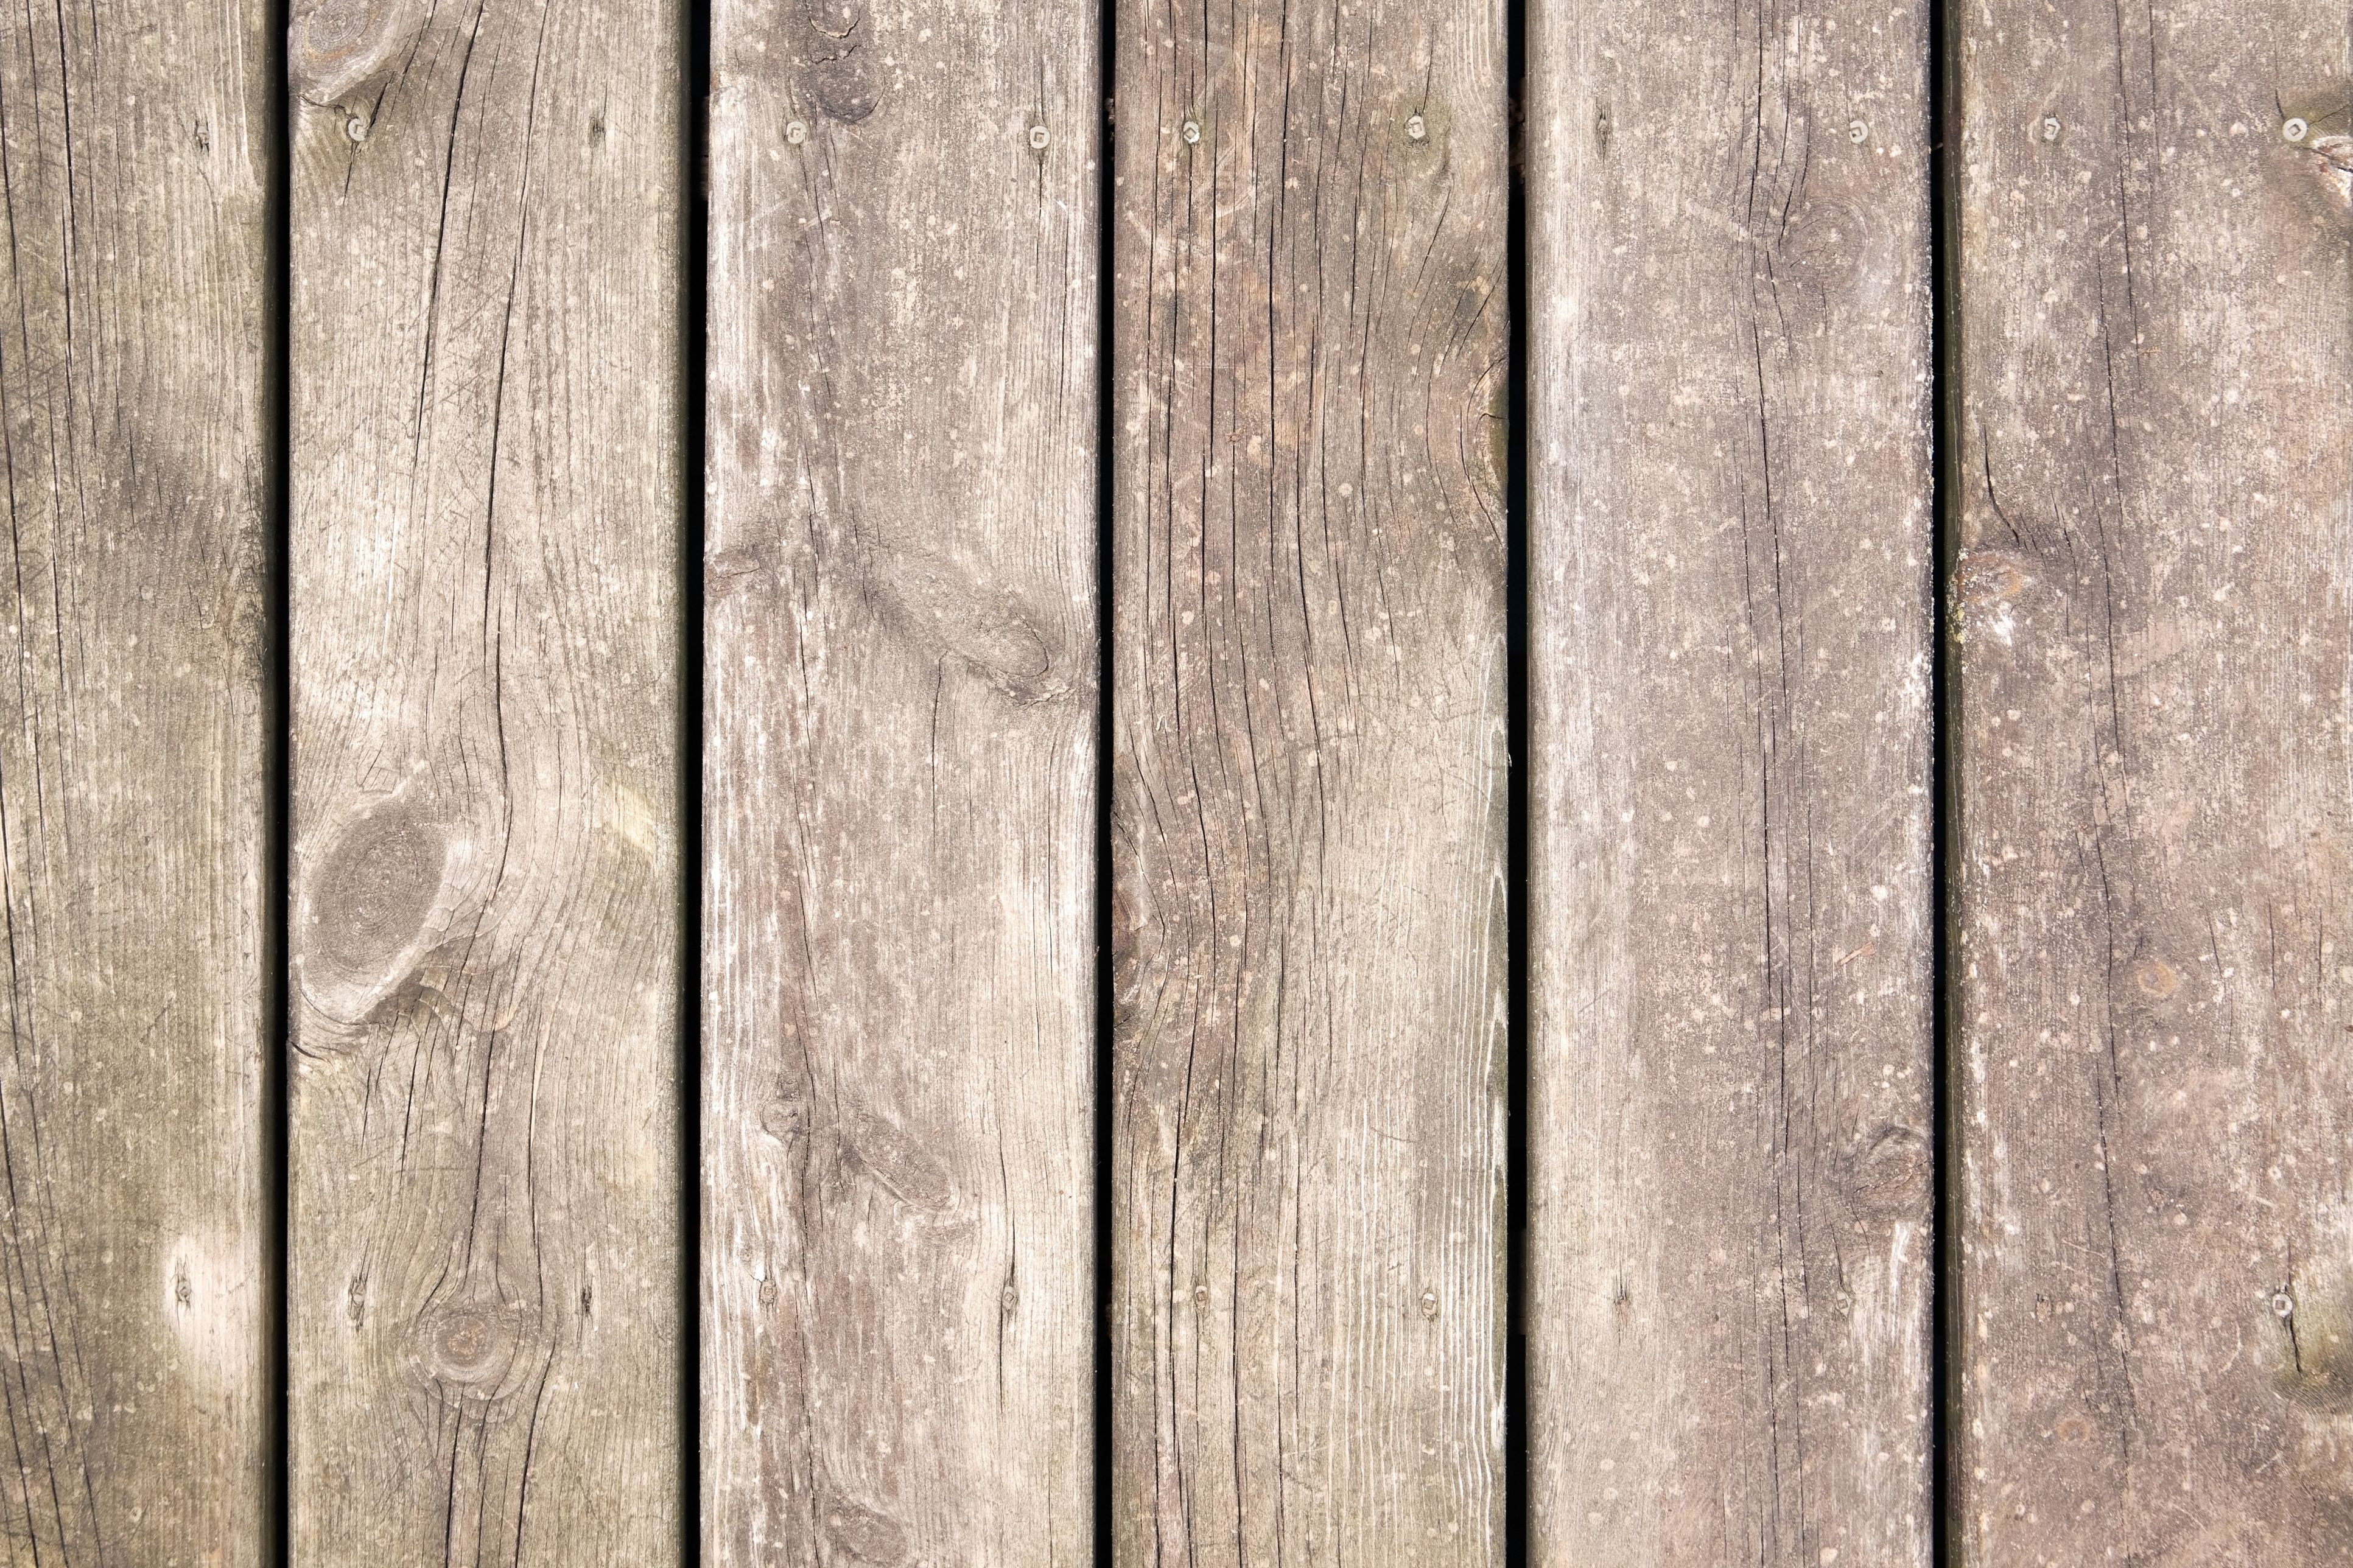 hardwood floor wax buffer of refinishing a wood deck an overview throughout weathered deck board background 171342280 5810fdcd3df78c2c7315c473